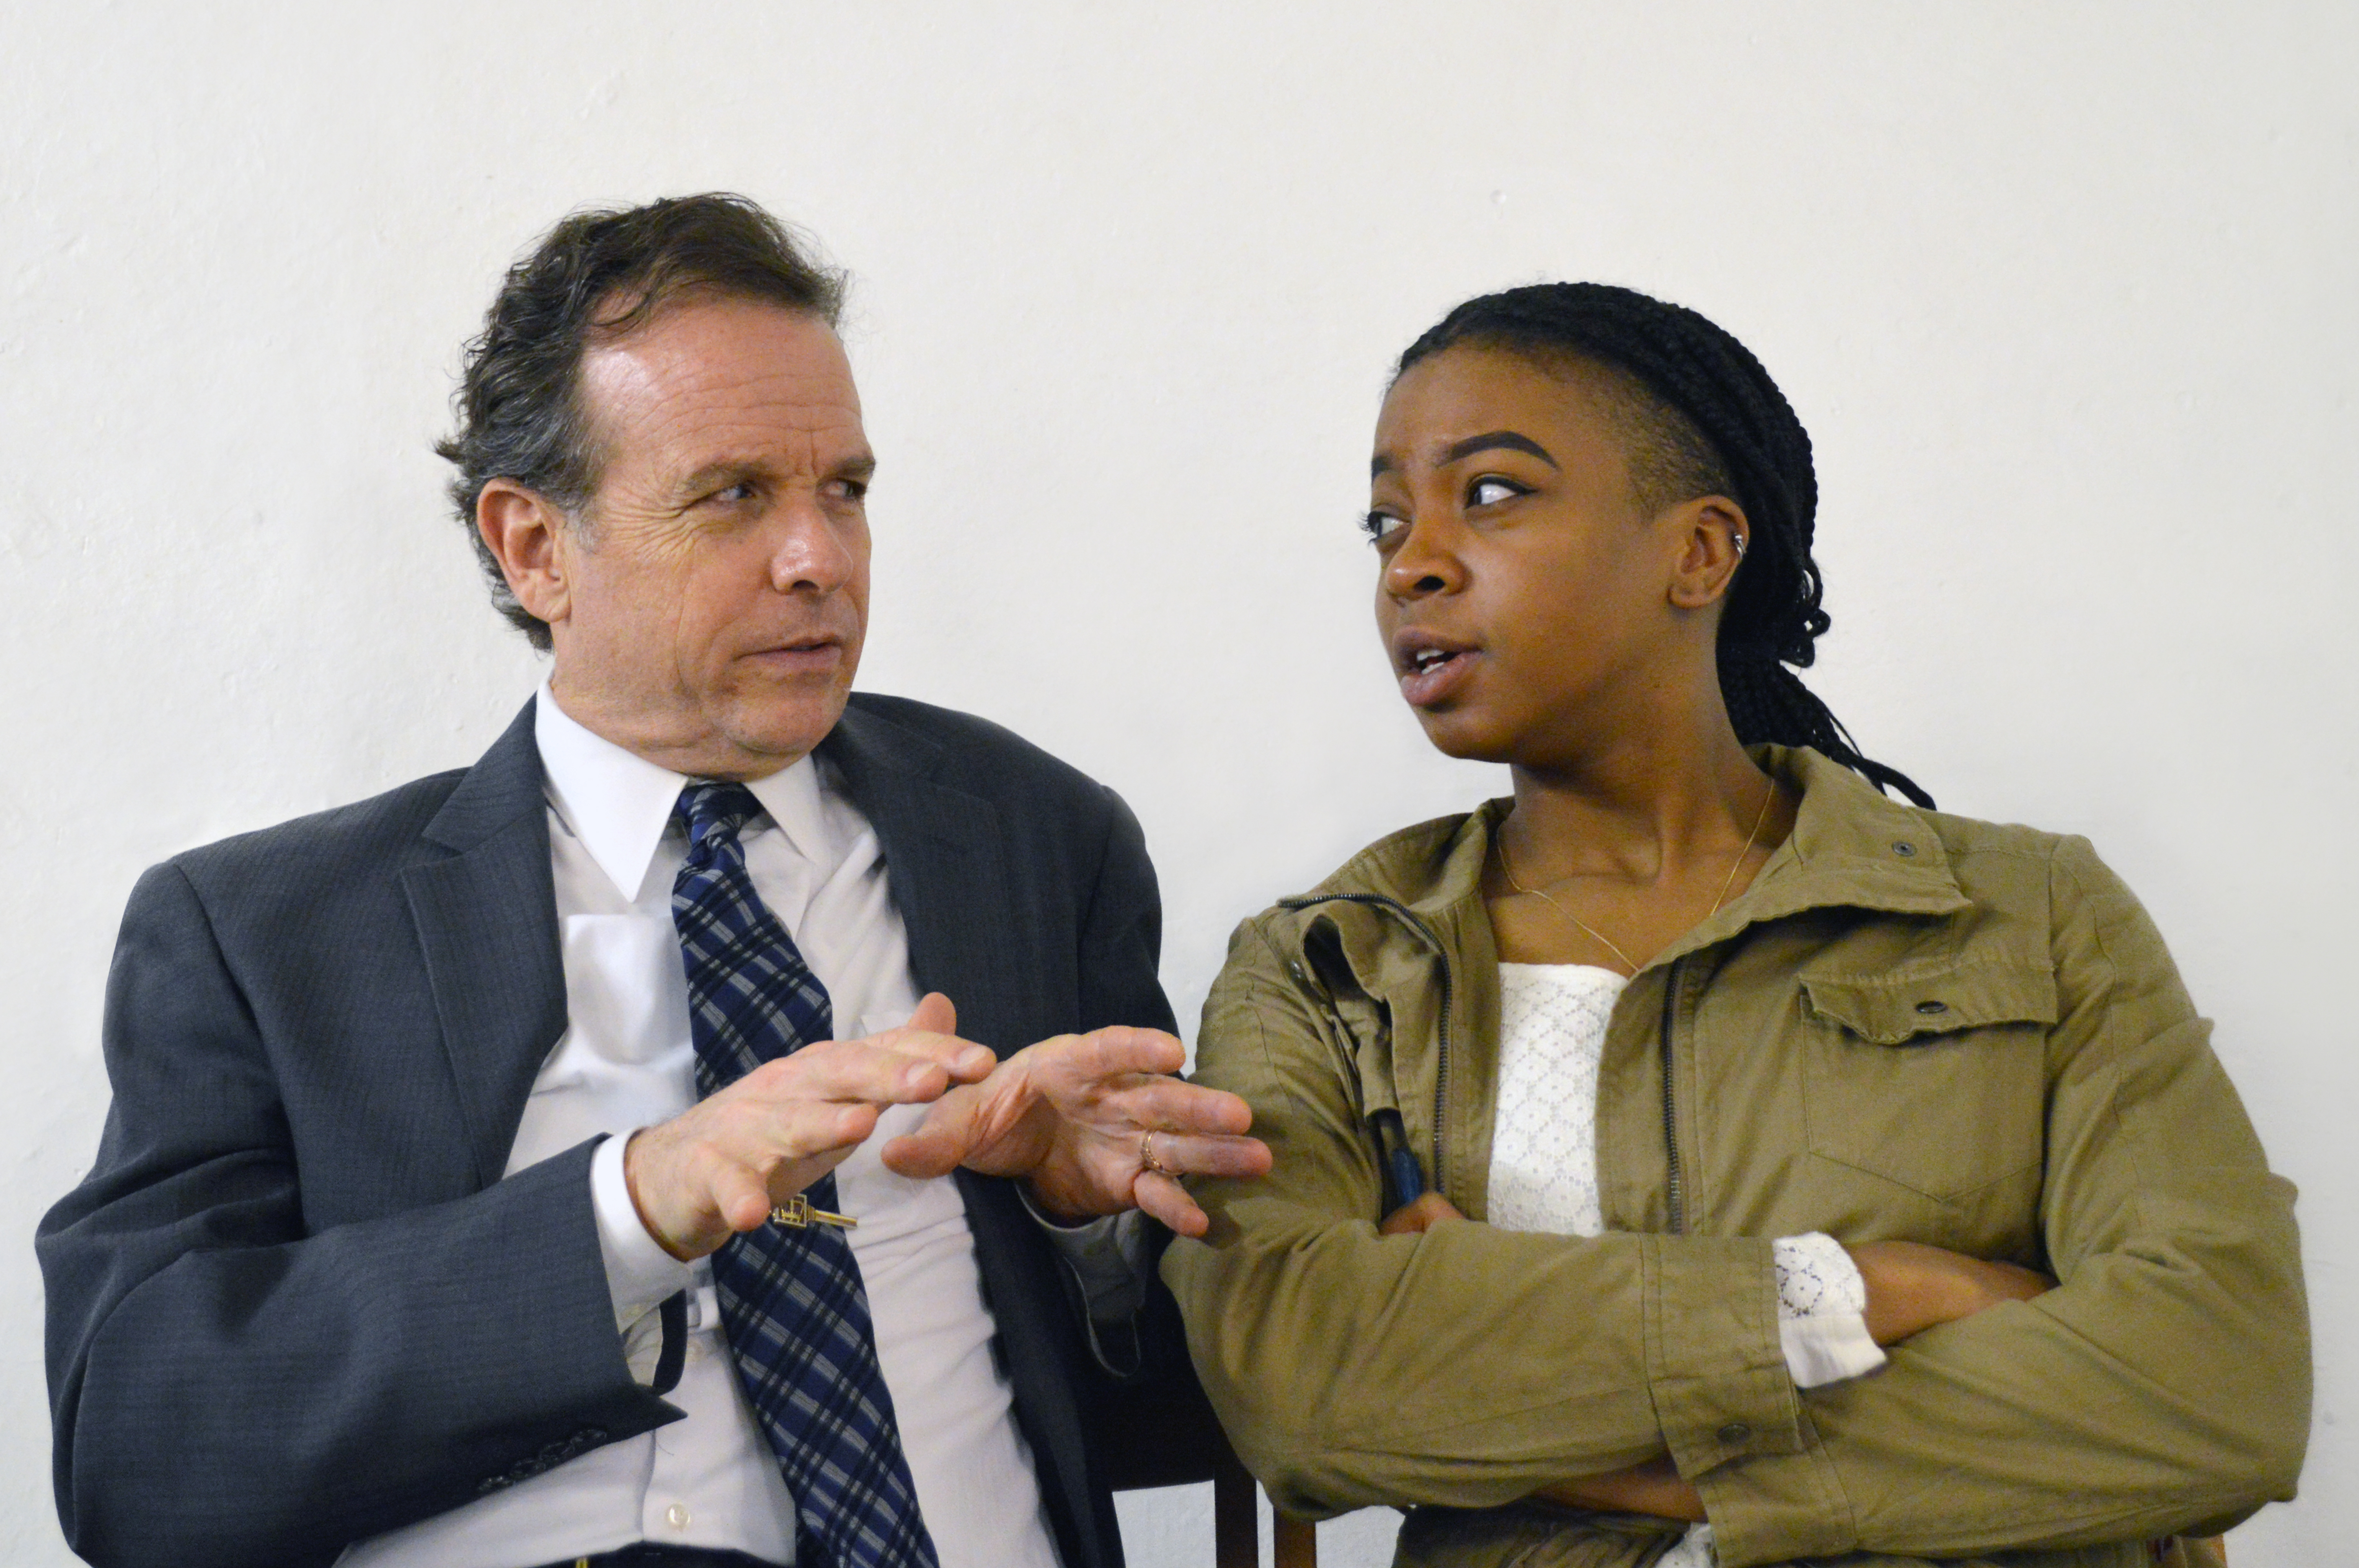 Donald Sage Mackay and Joanna McGibbon in 'White Guy on a Bus' at FInborough Theatre